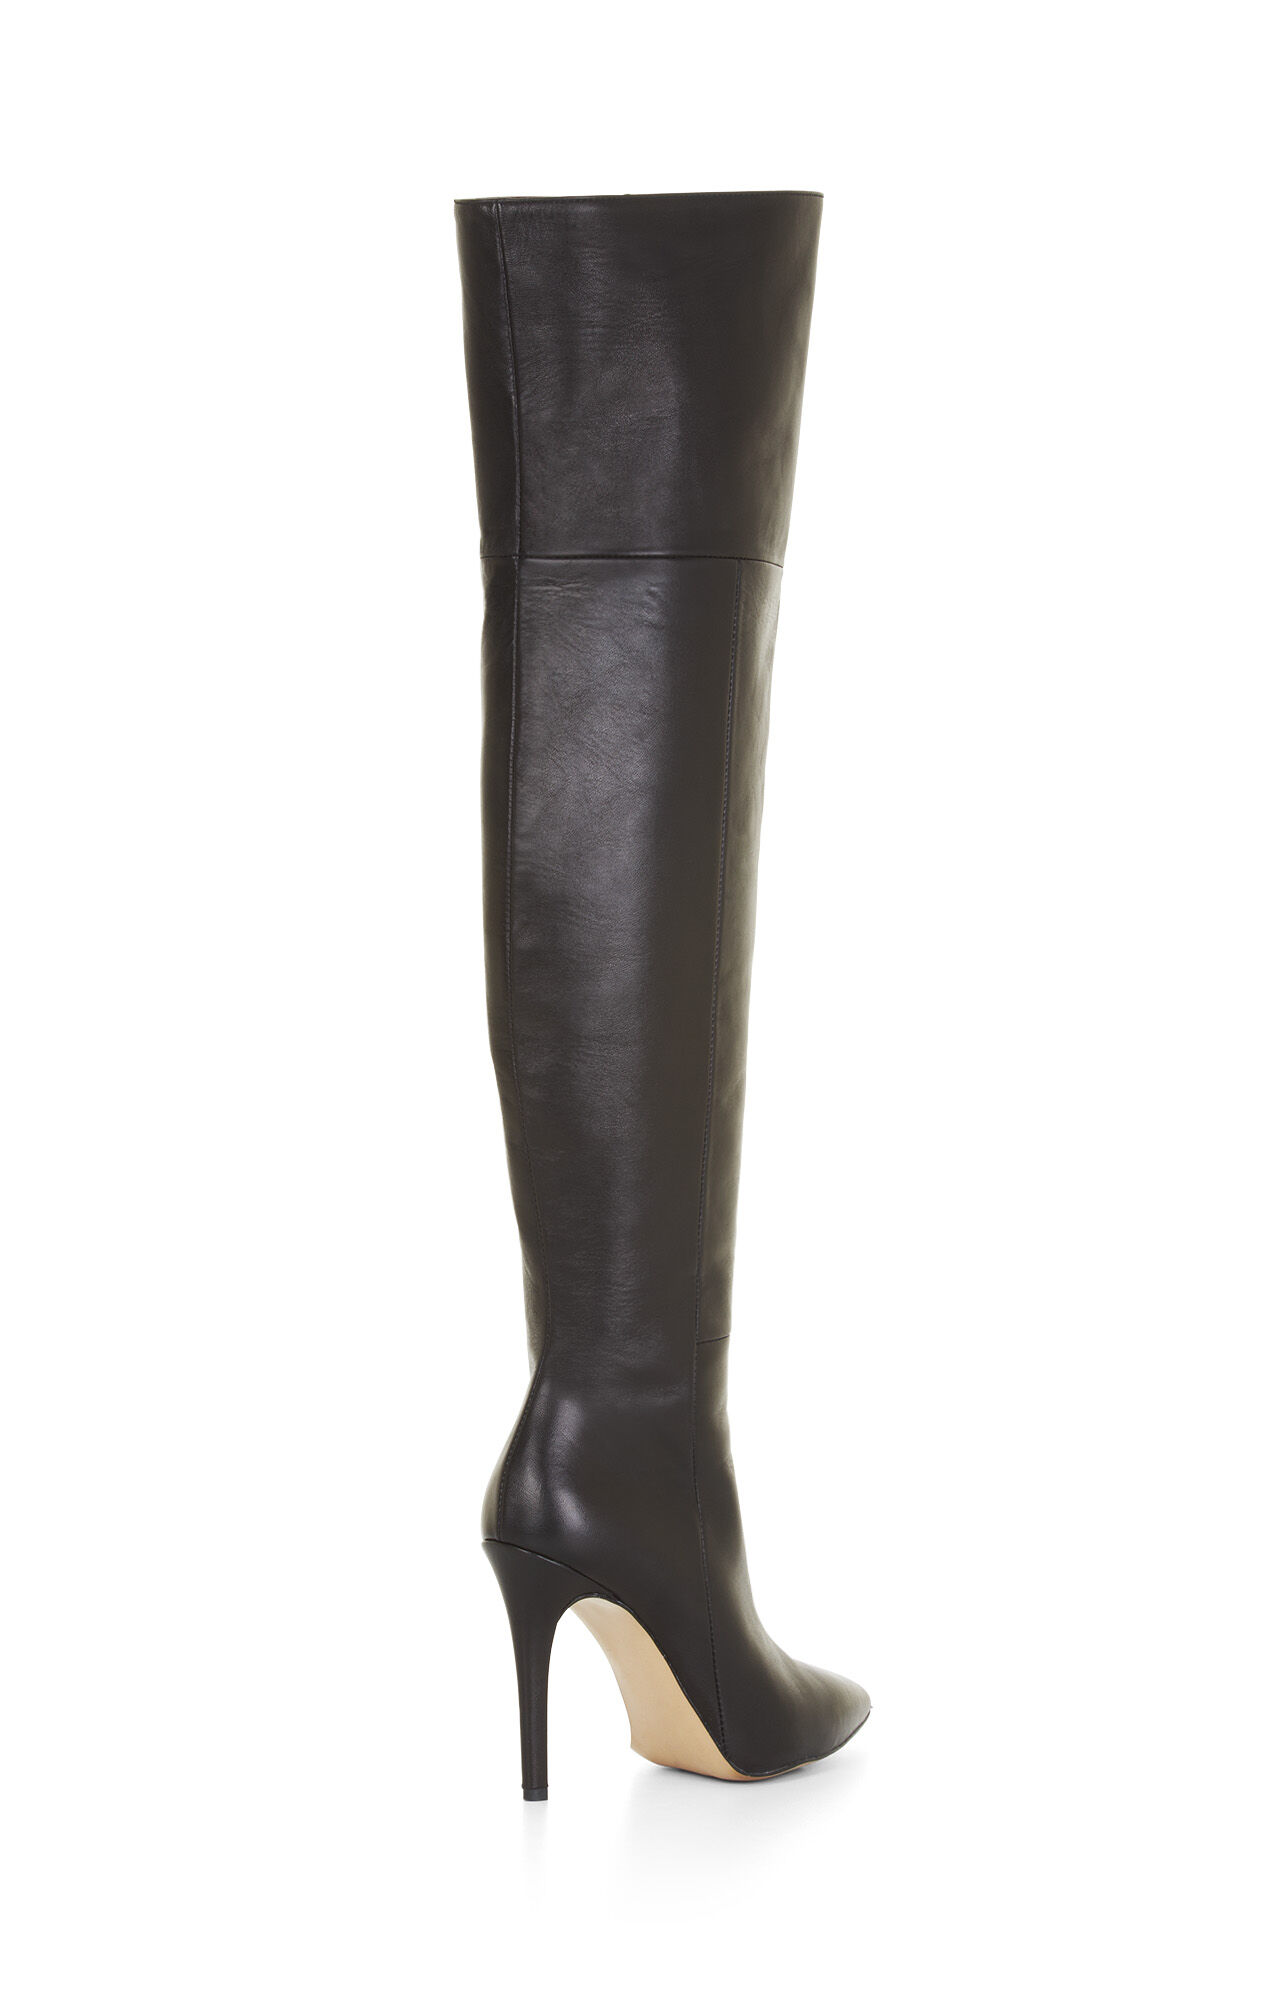 High-Heel Over-The-Knee Leather Boots